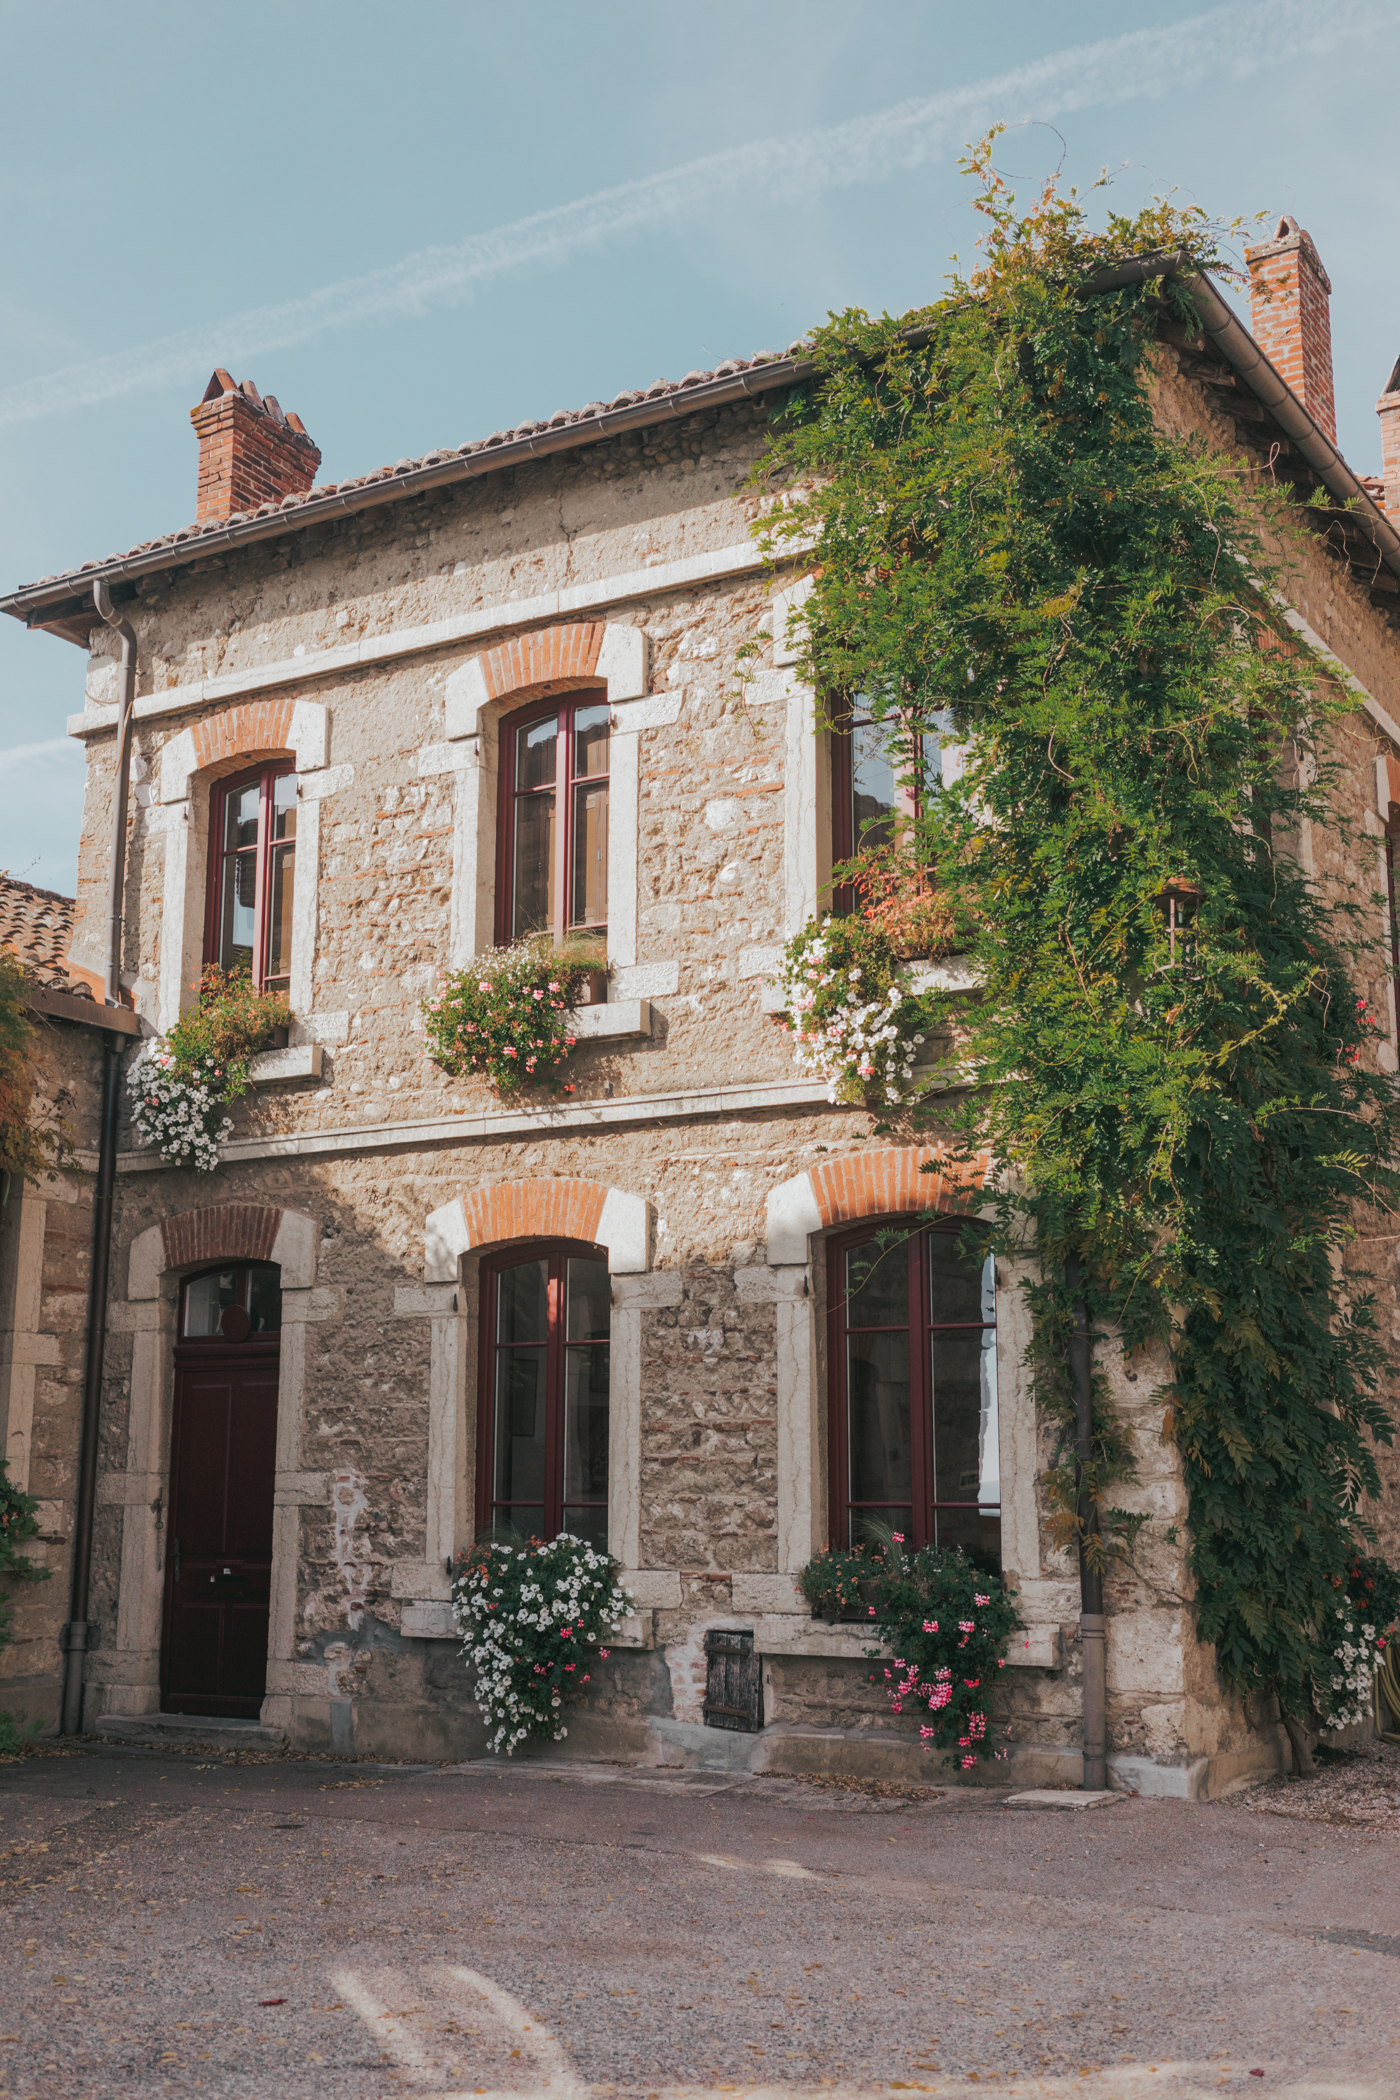 Perouges France Medieval Town - Everything you need to know before visiting this #SmallFrenchVillage on a day trip from Lyon